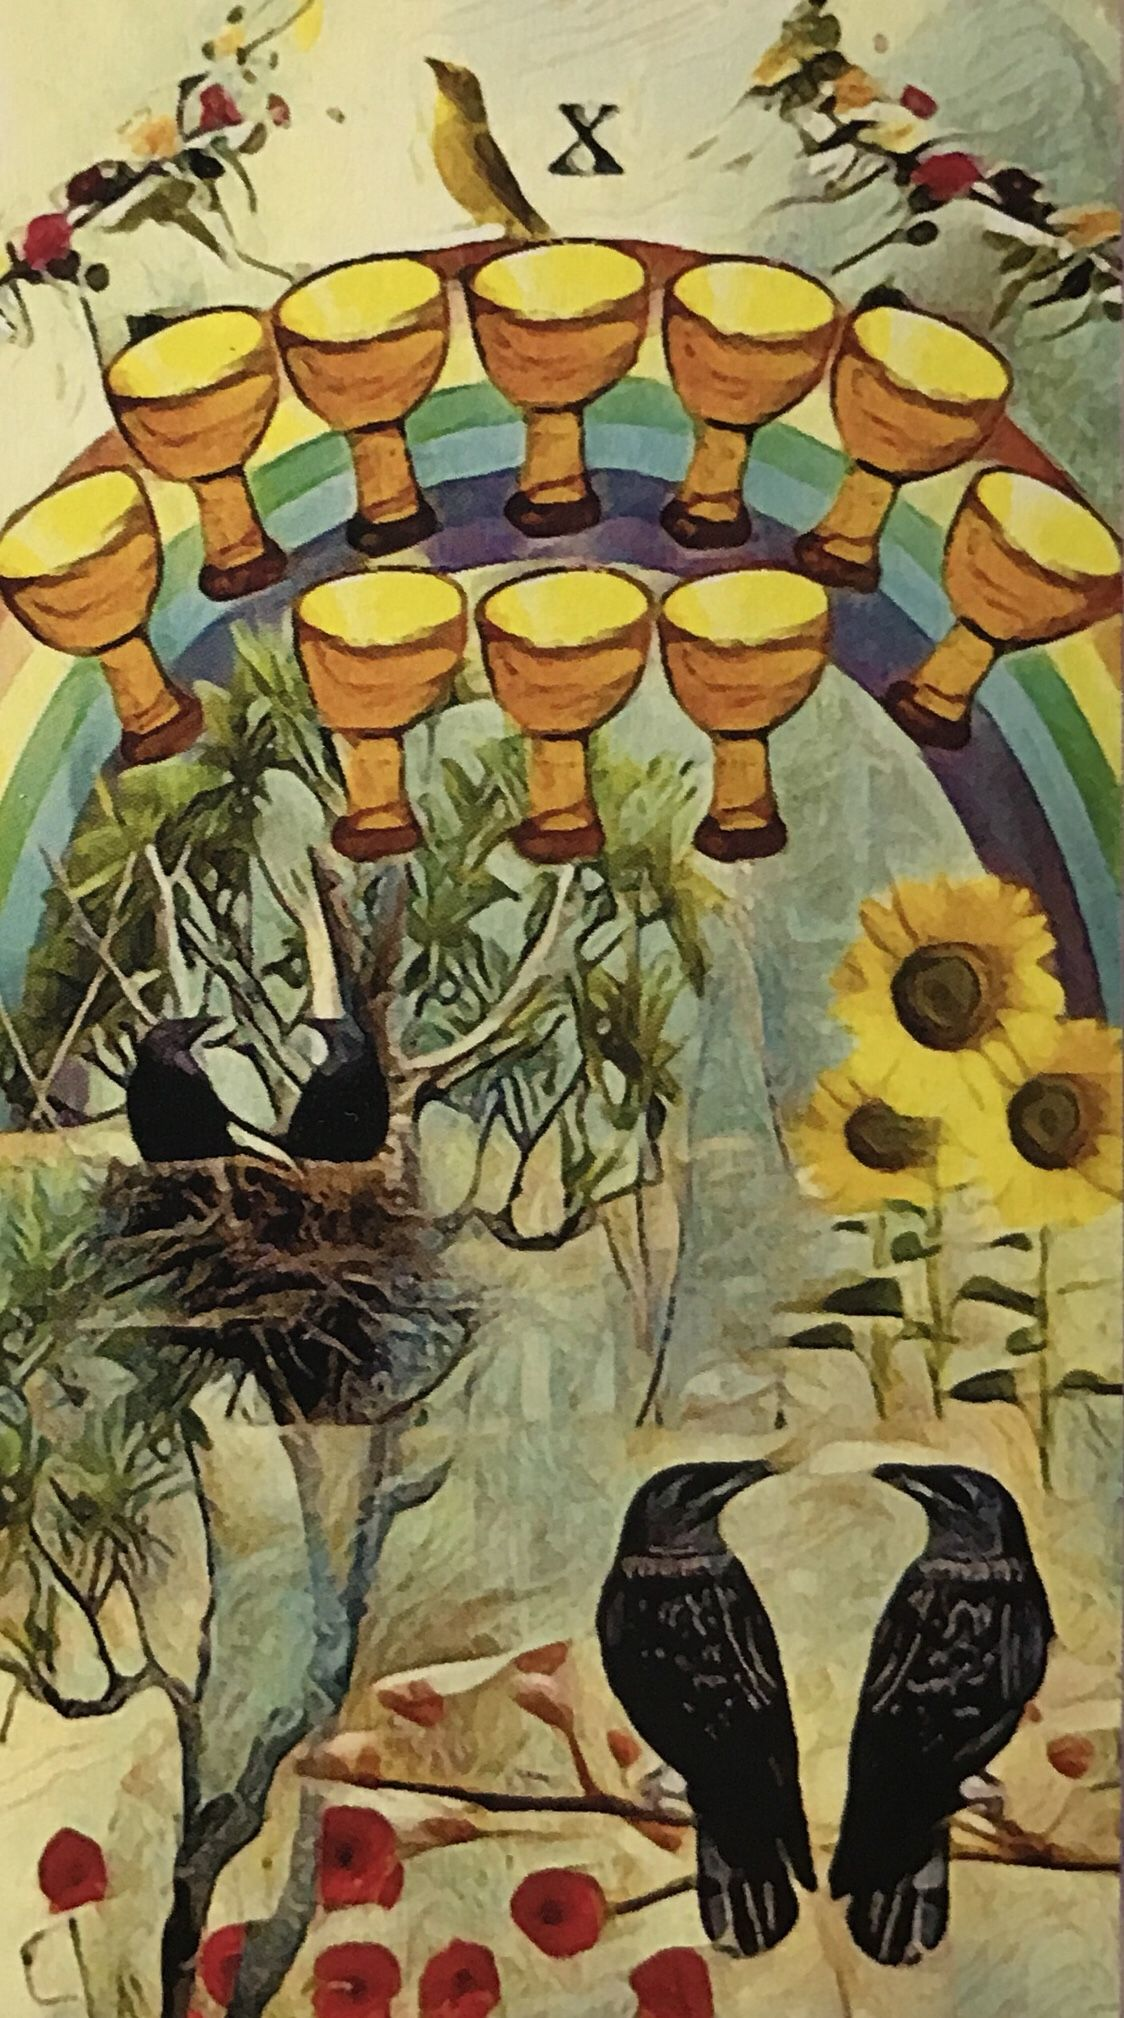 Featured card of the day 10 of cups crow tarot by mj